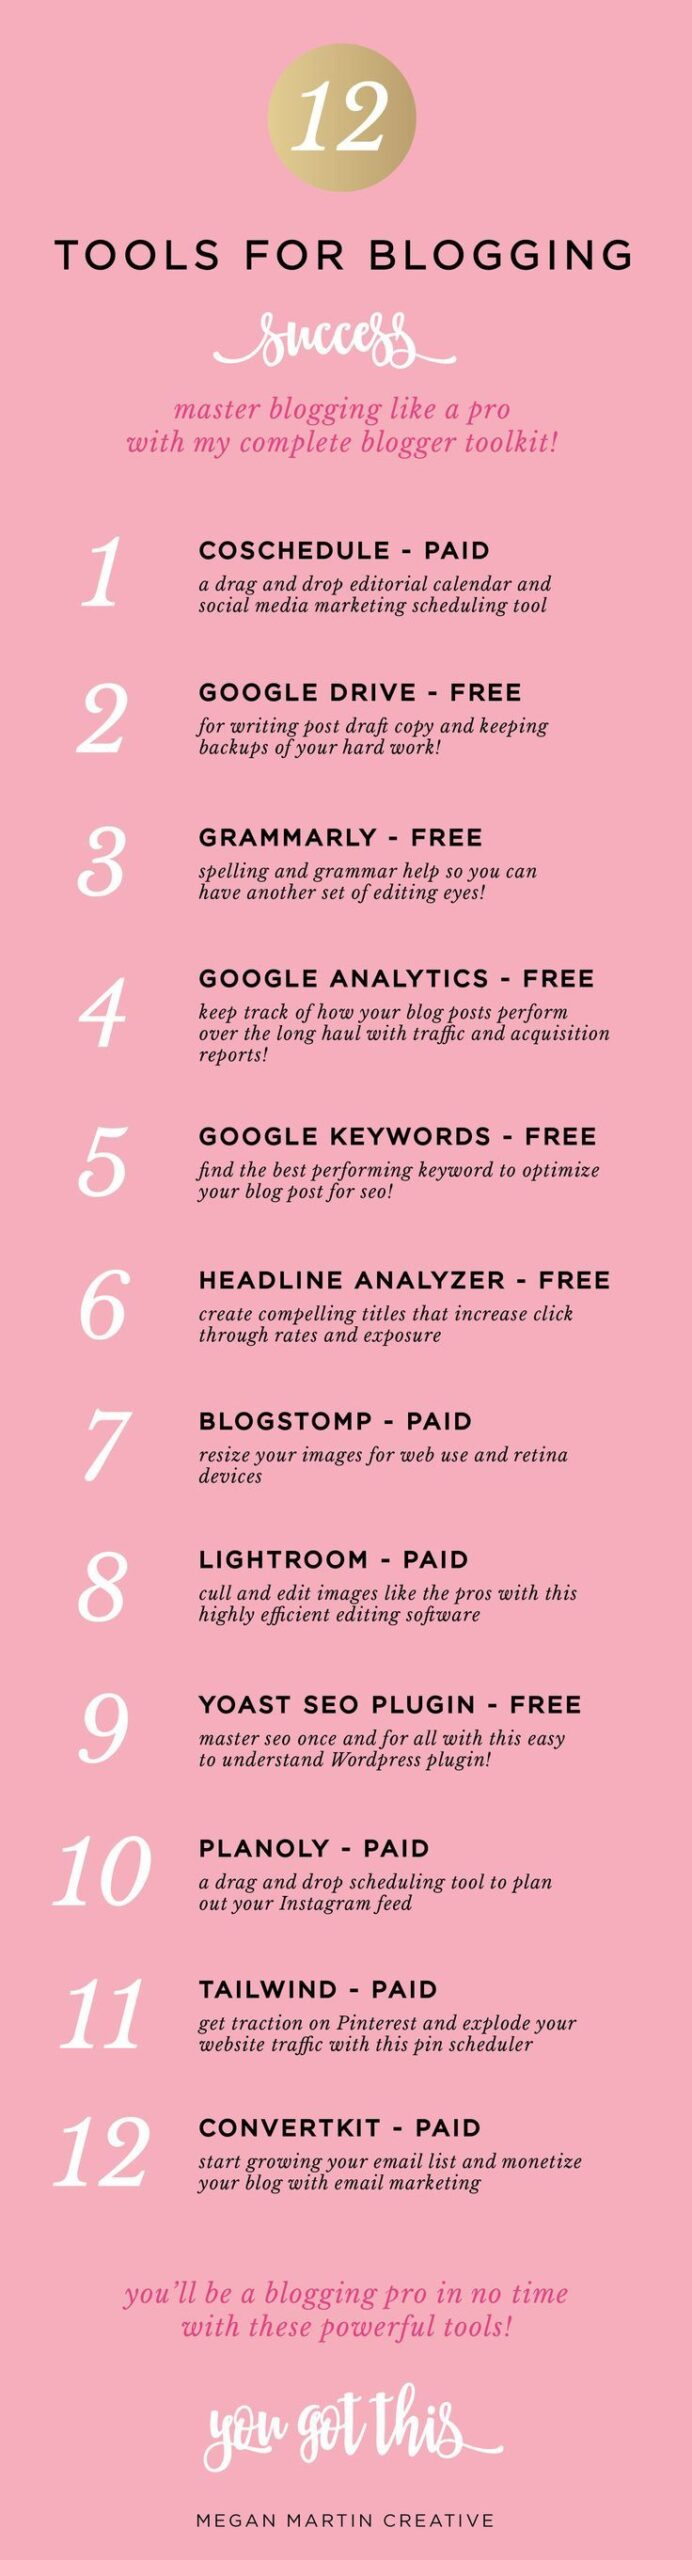 The Best Tools for Blogging Success You Need Now - Megan Martin Creative | Website Designer and Conversion Strategist